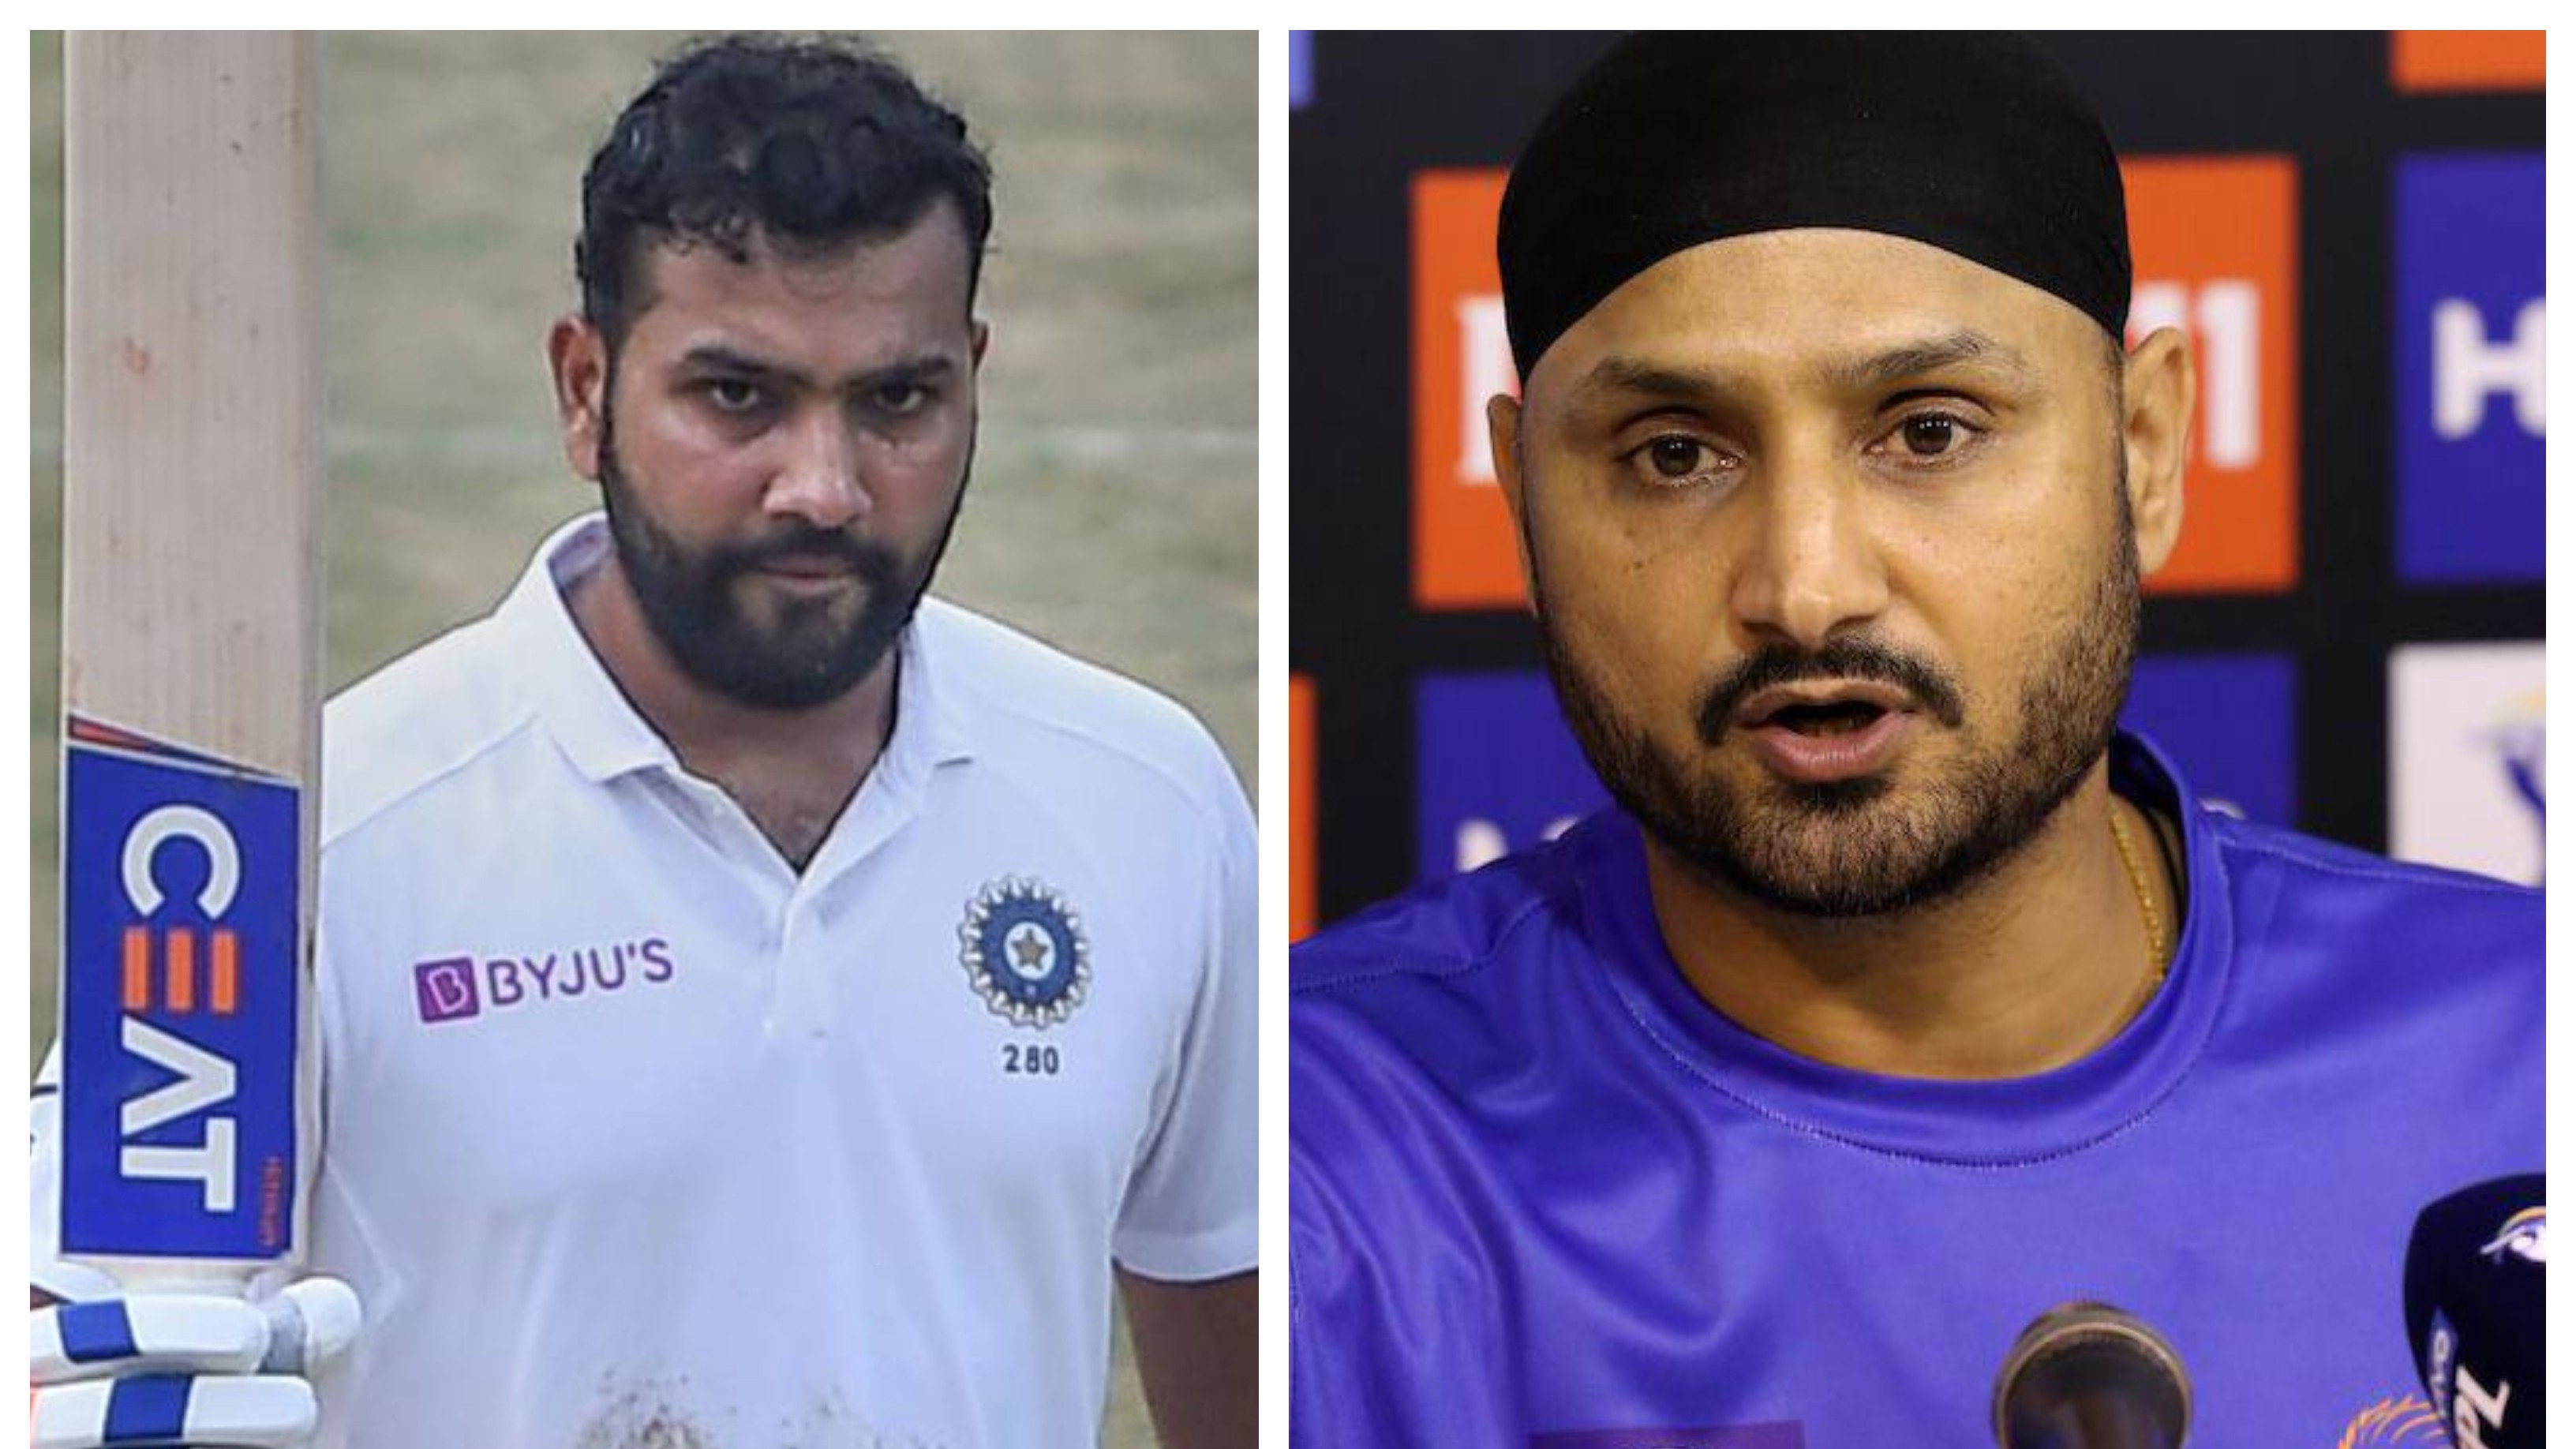 IND v SA 2019: Don't know why the team management took so long to open with Rohit, says Harbhajan Singh